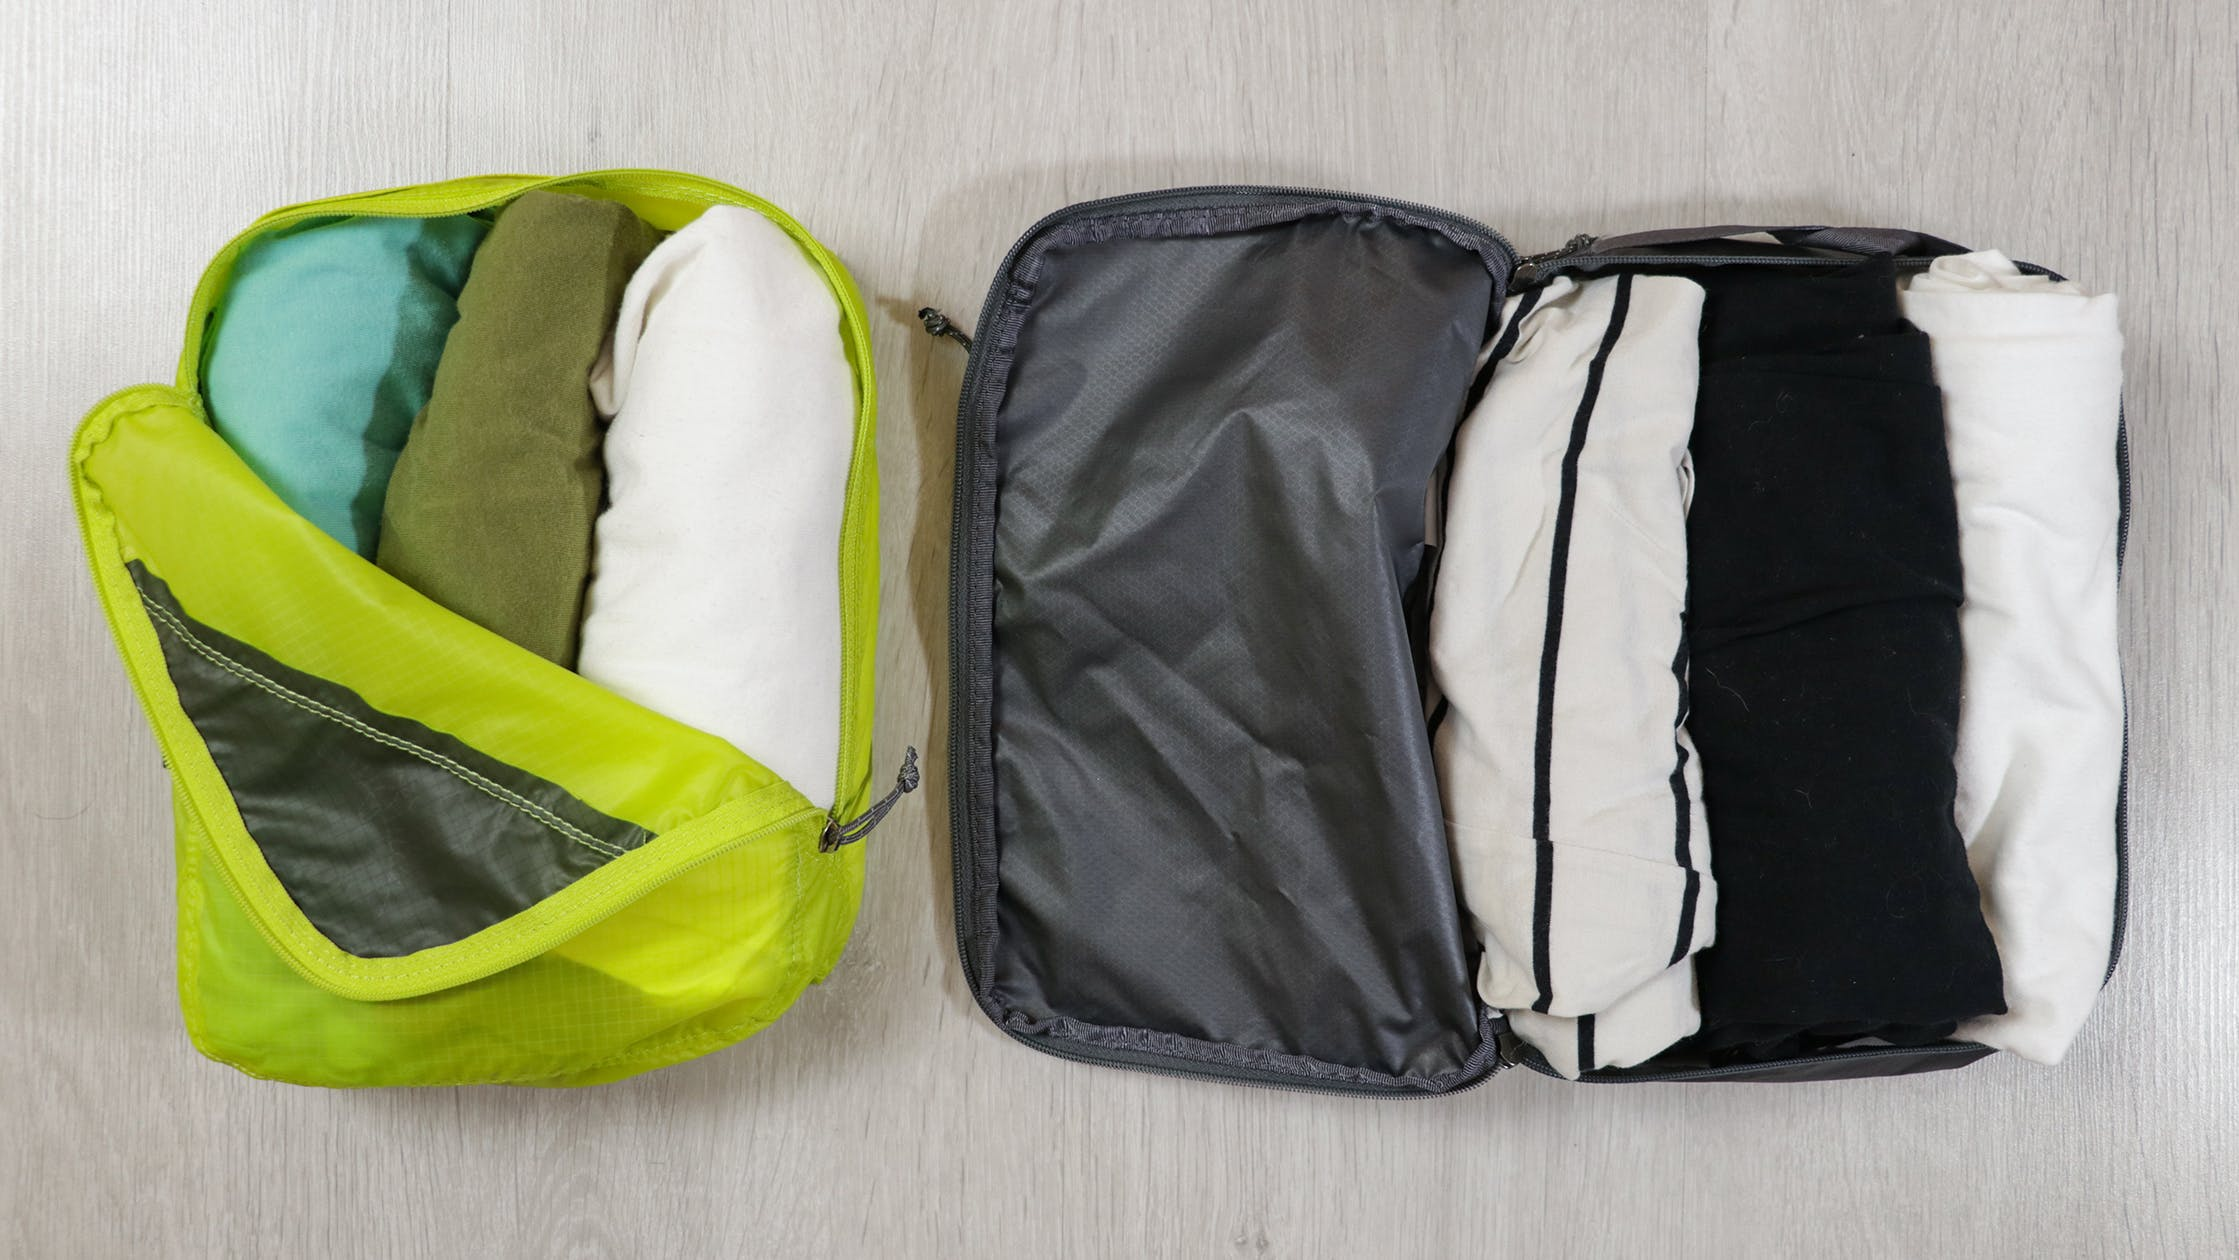 Half Zippered Opening (Left) & Clamshell Opening (Right)